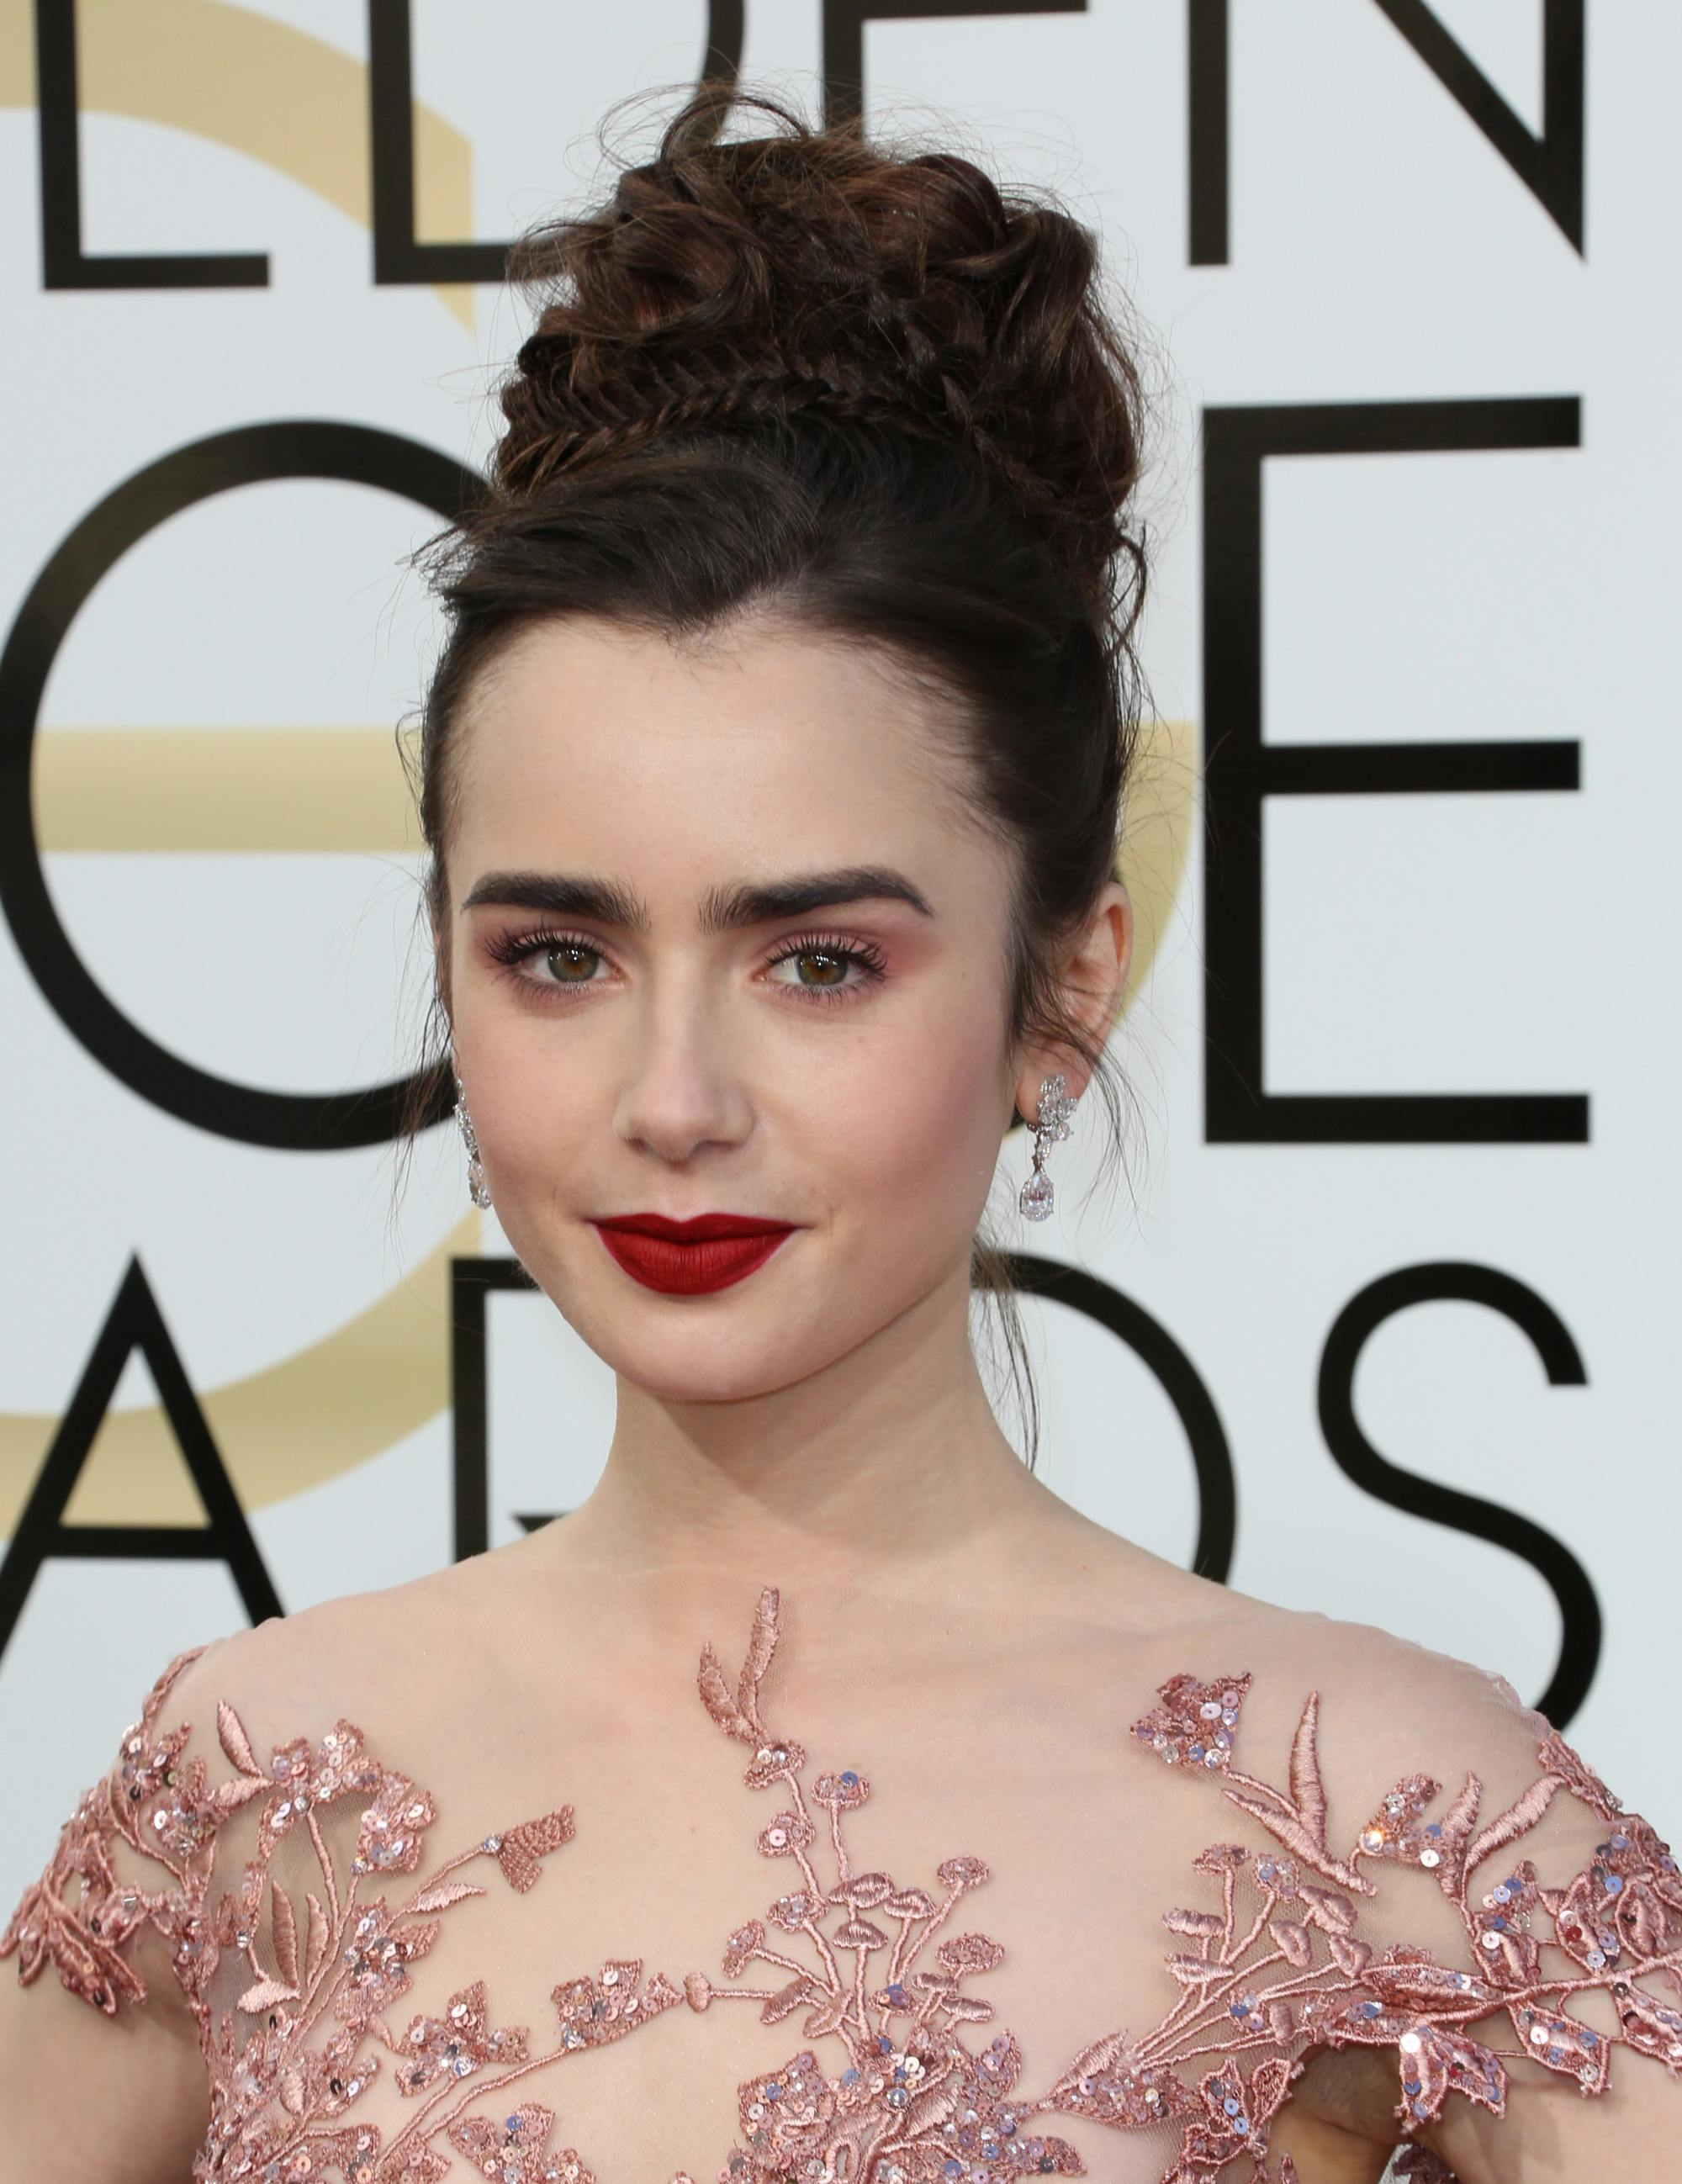 prom updos: lily collins with braided bun updo hairstyle at the golden globes